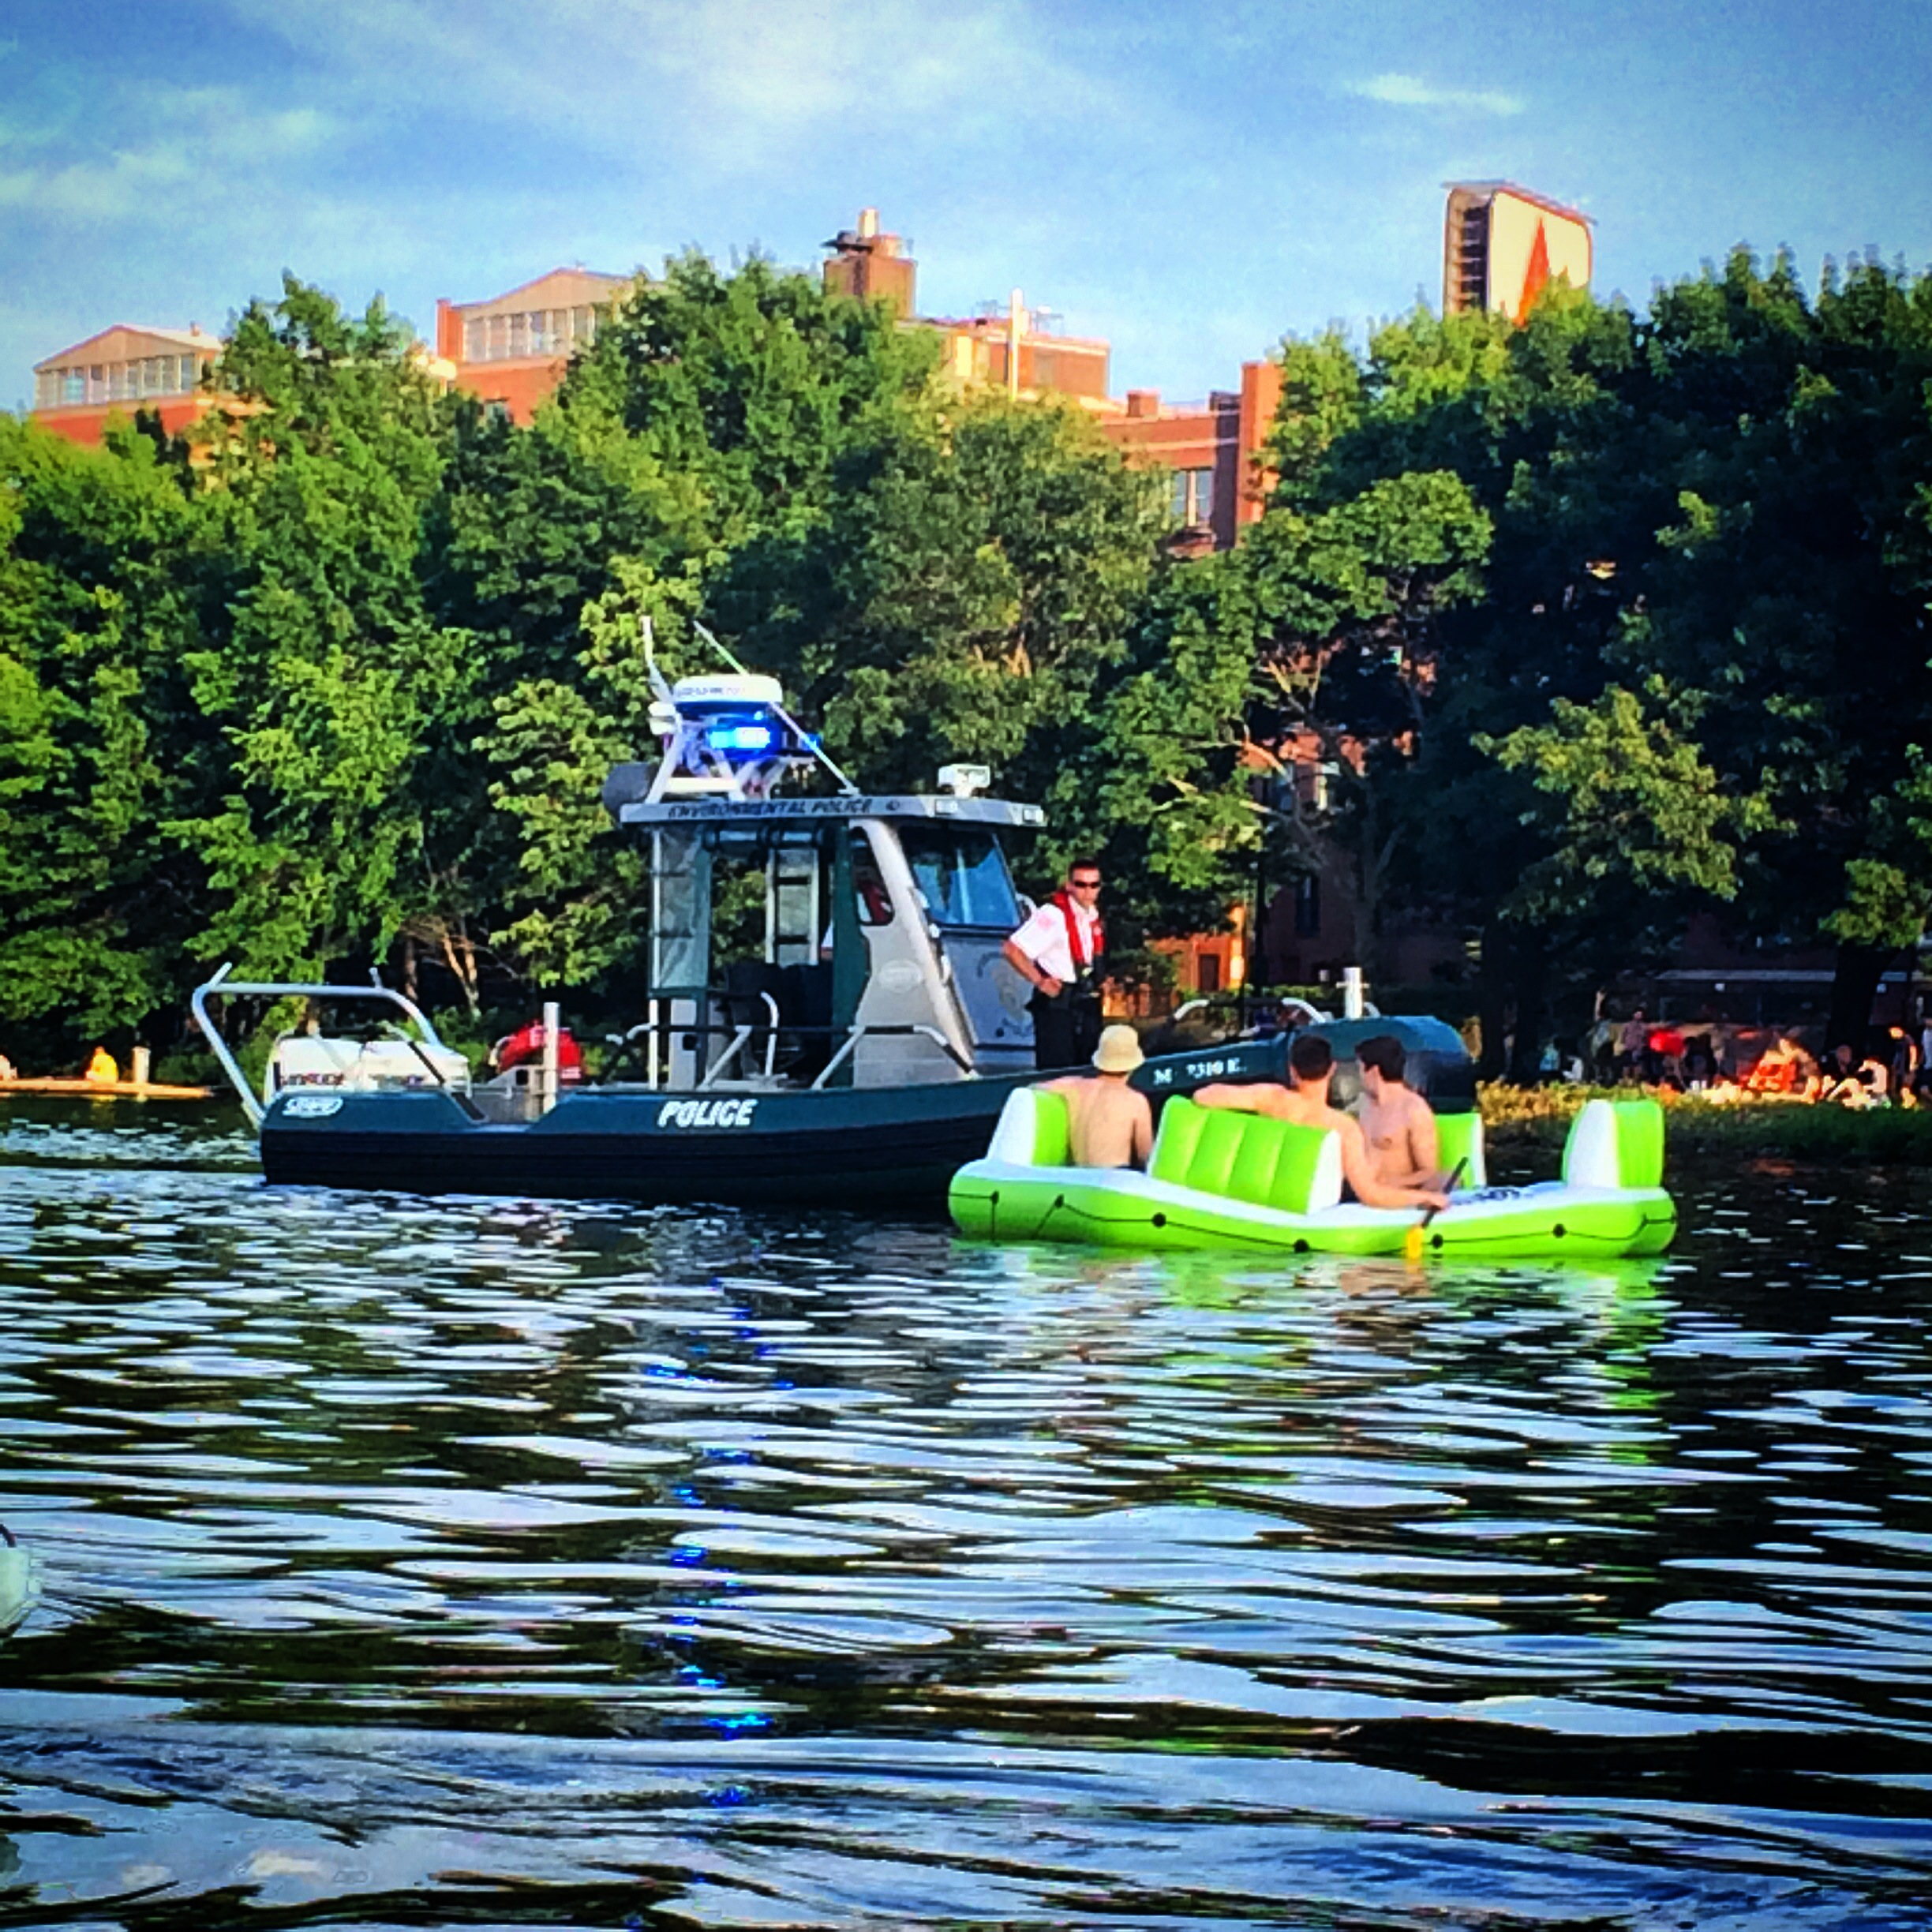 State police marine unit enforcing life jacket rules.